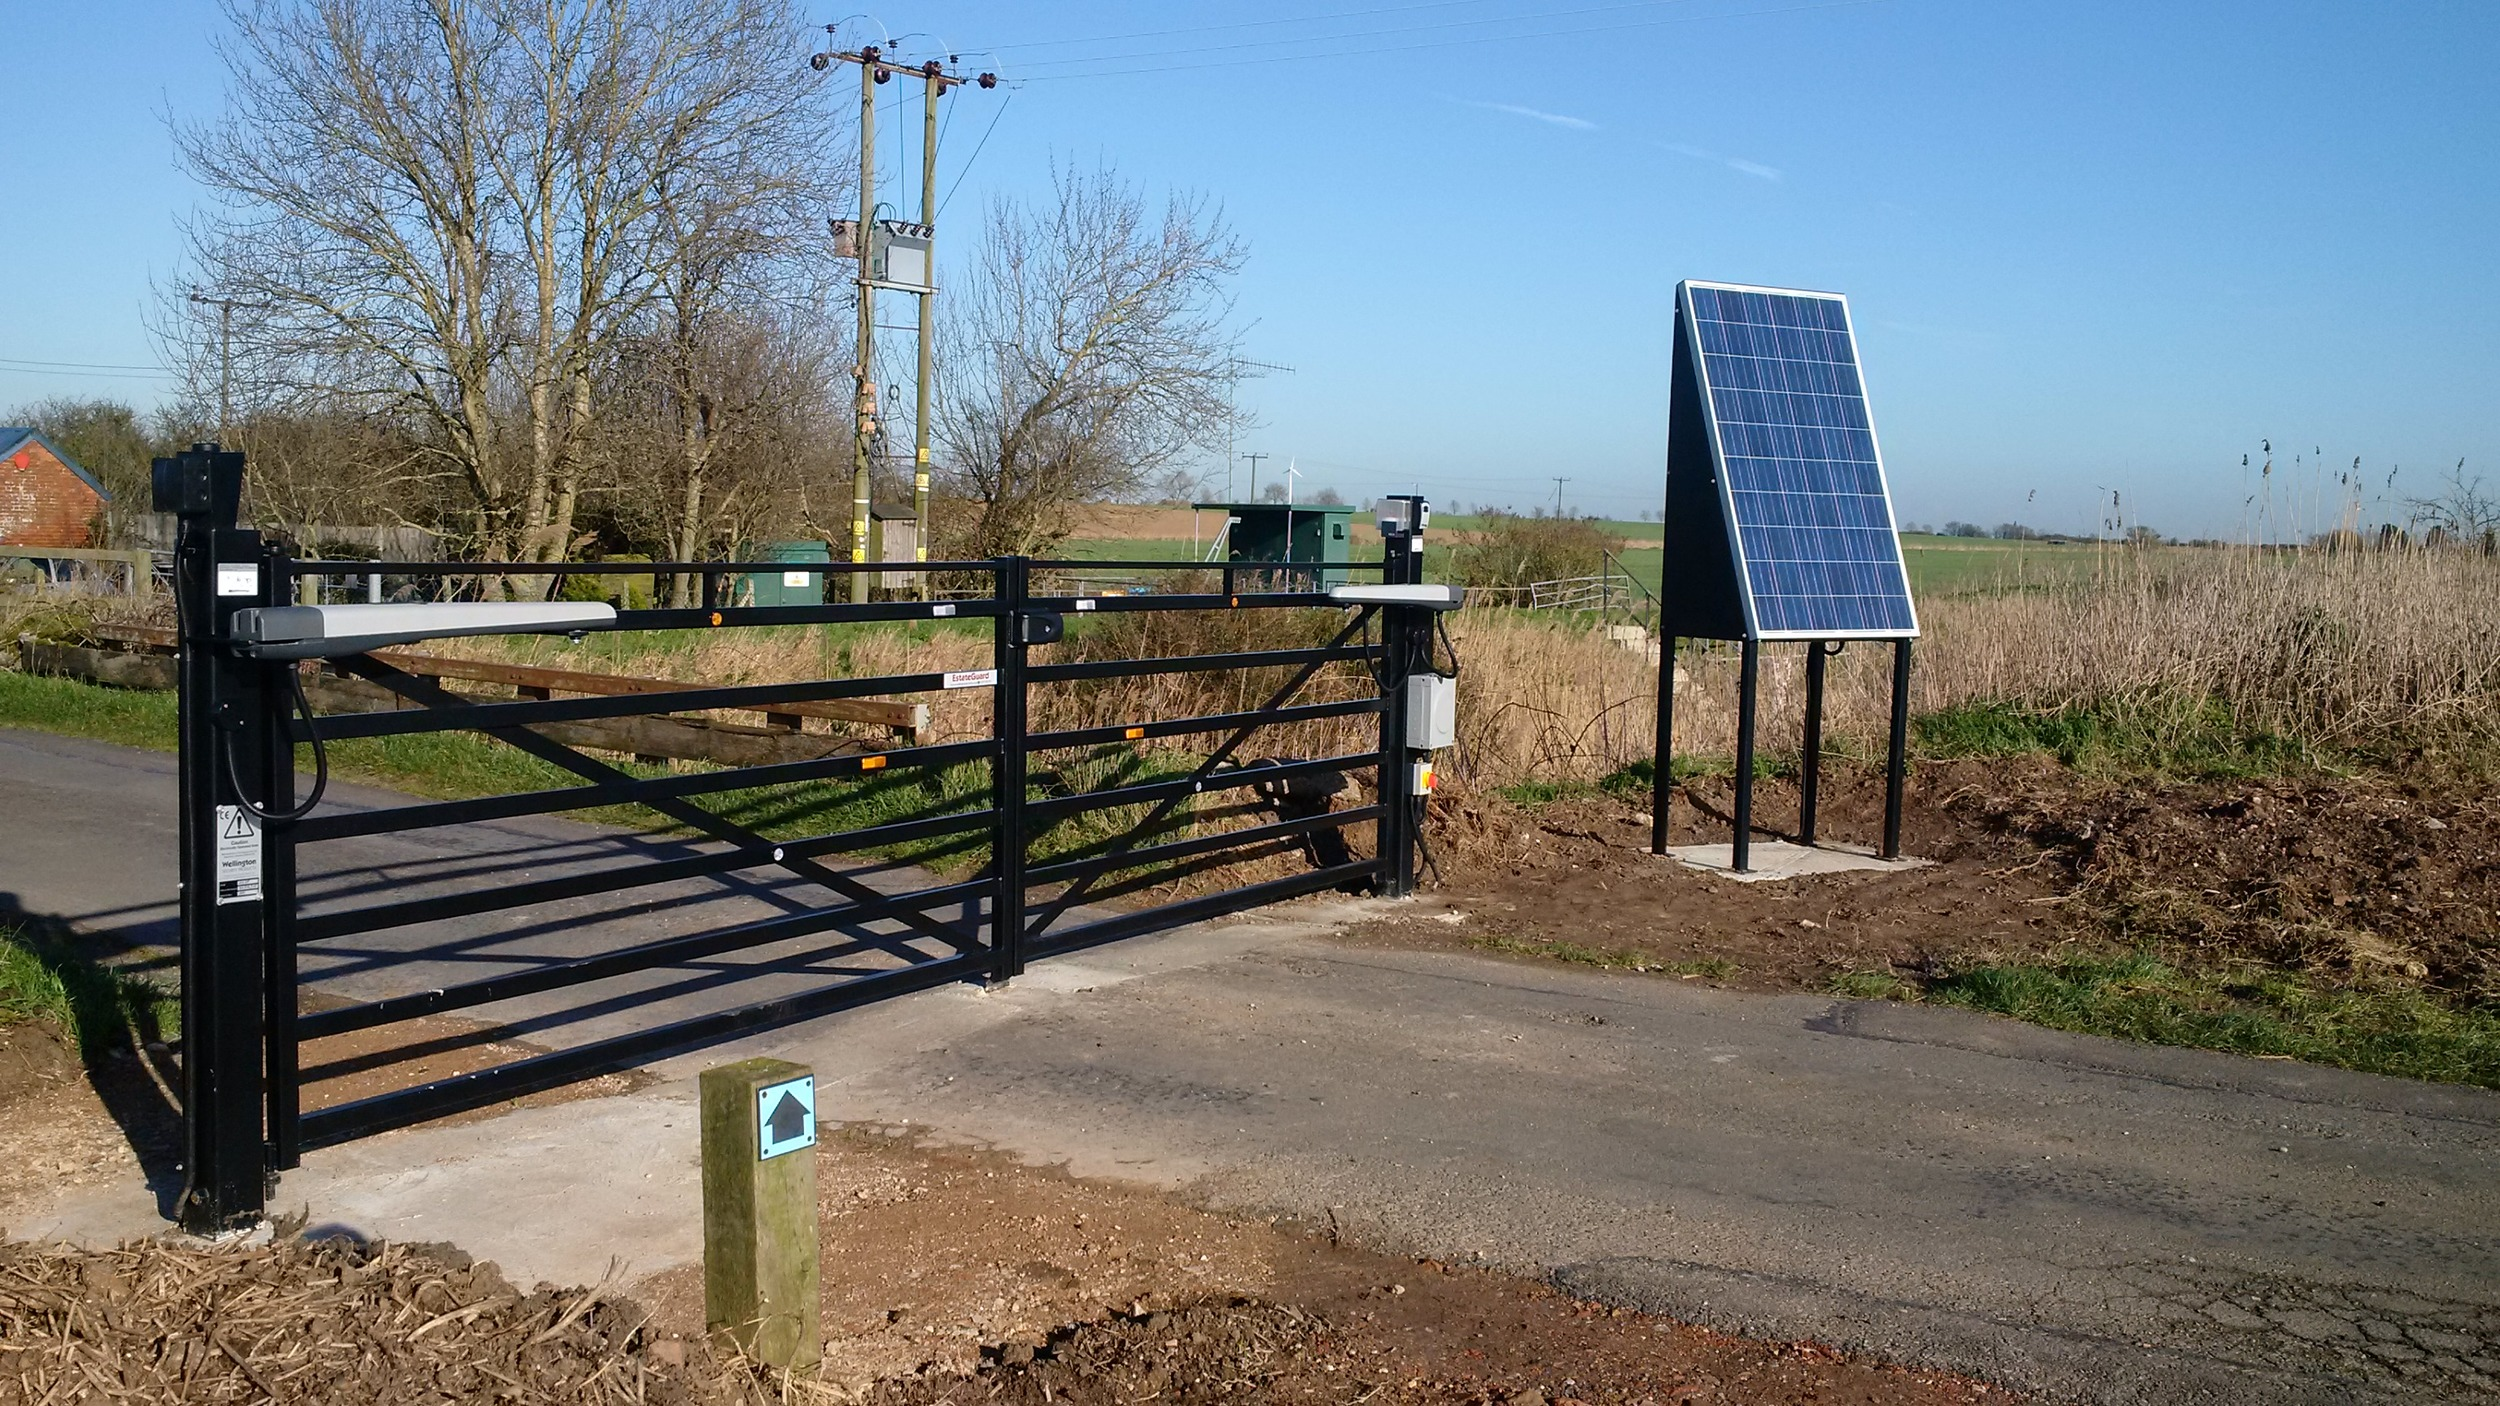 A high-use gate on a private road near Burnham on Crouch. Operated by radio fobs, a keypad and GSM intercom.